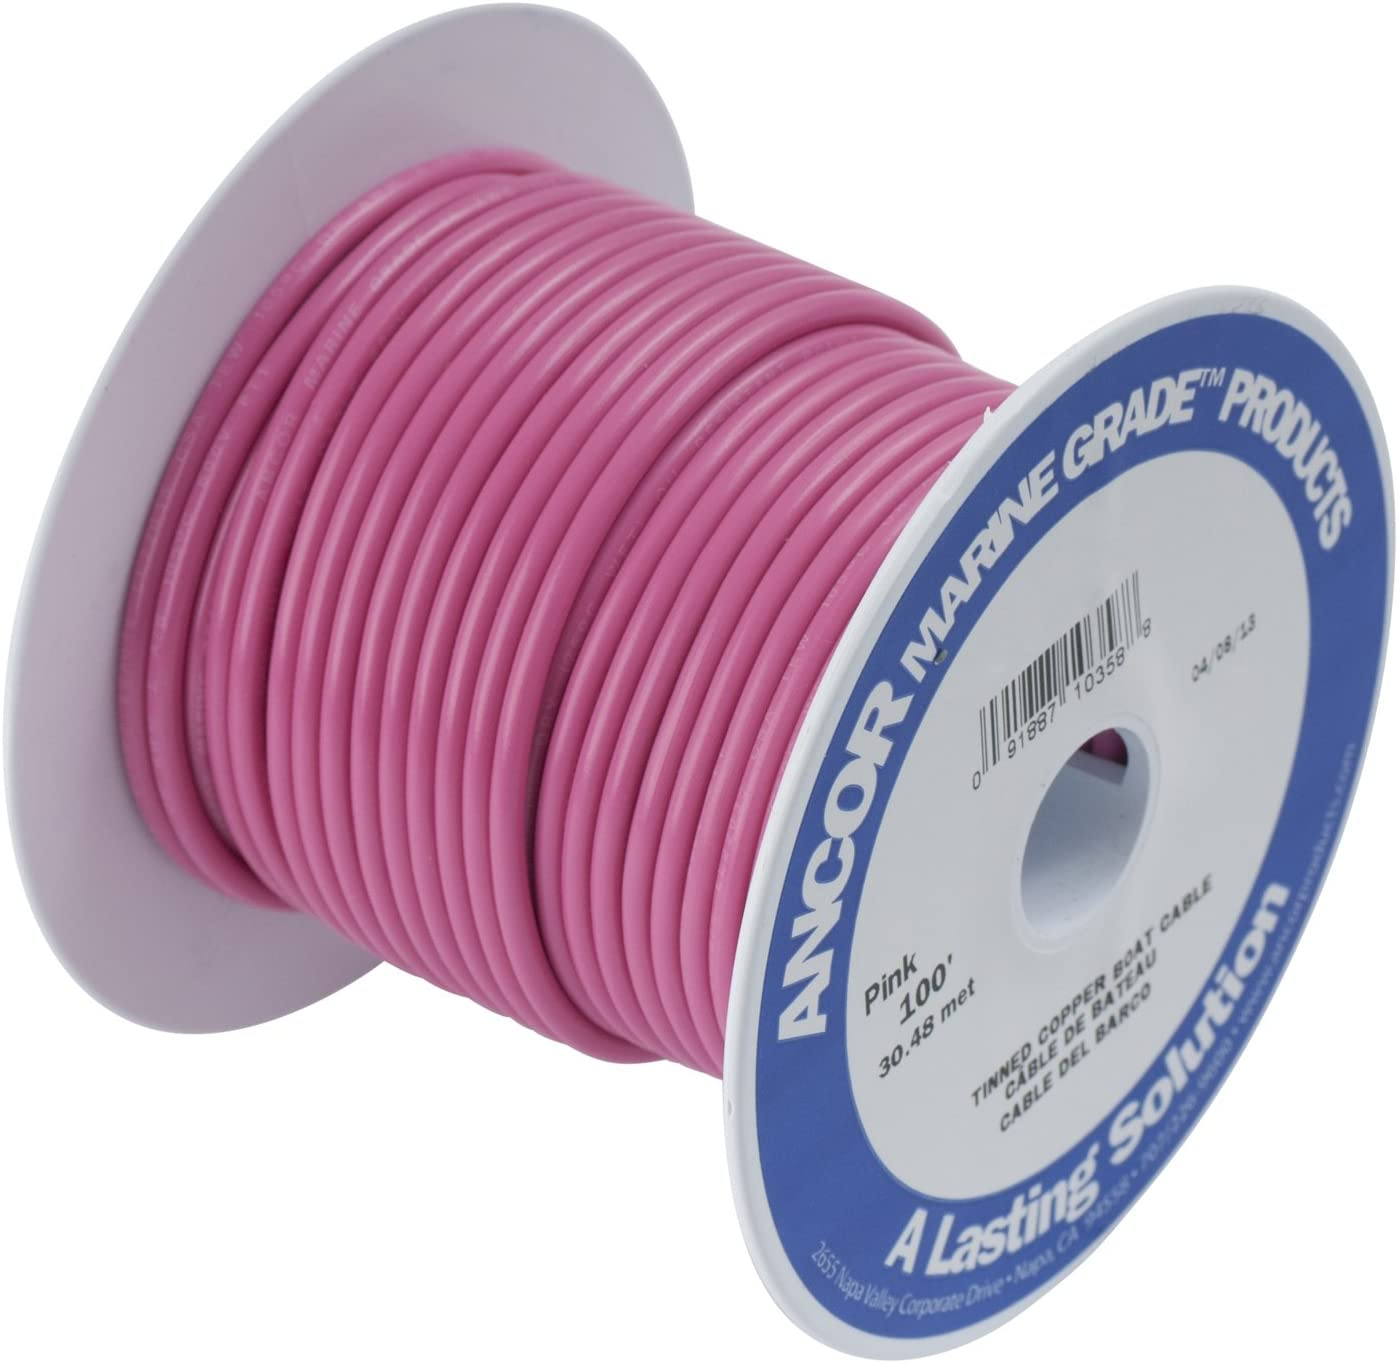 Ancor 104610 Marine Grade Electrical Primary Tinned Copper Boat Wiring 14-Gauge, Pink, 100-Feet